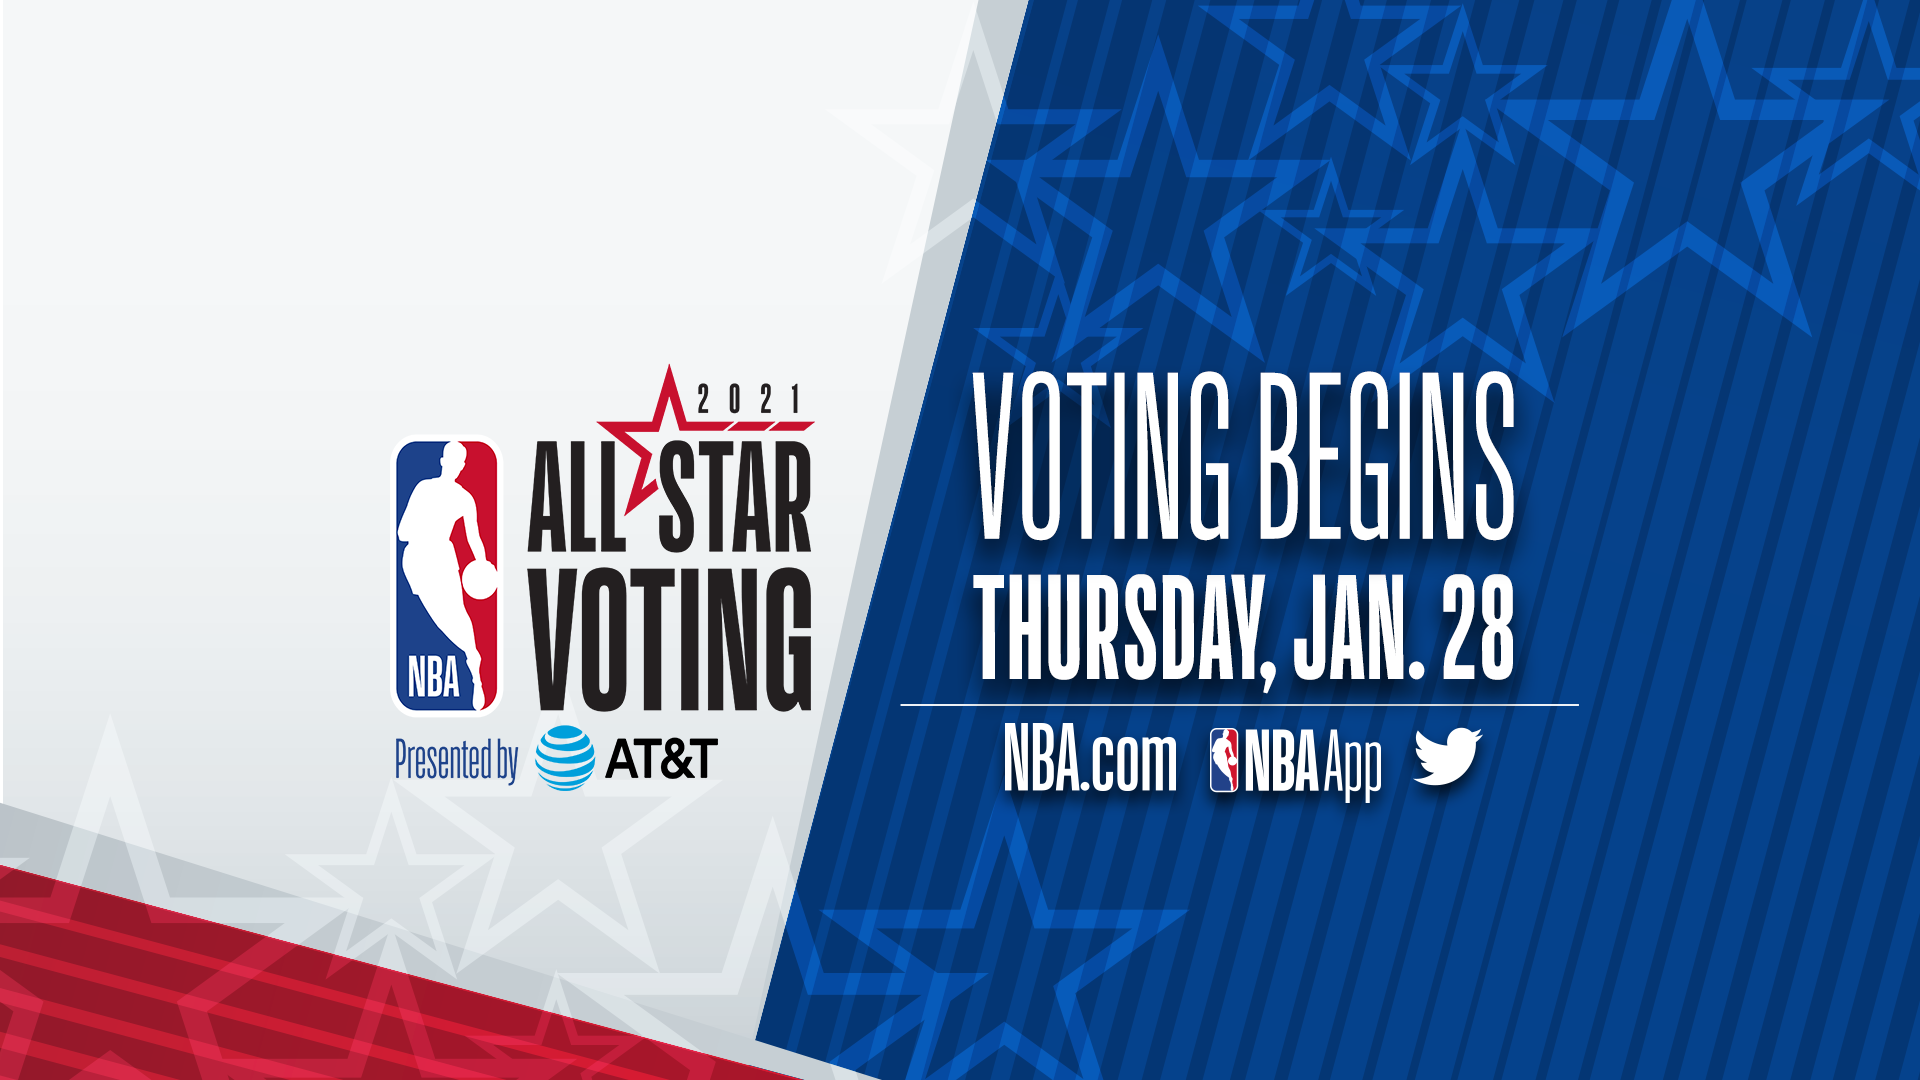 NBA All-Star Voting presented by AT&T tips off today